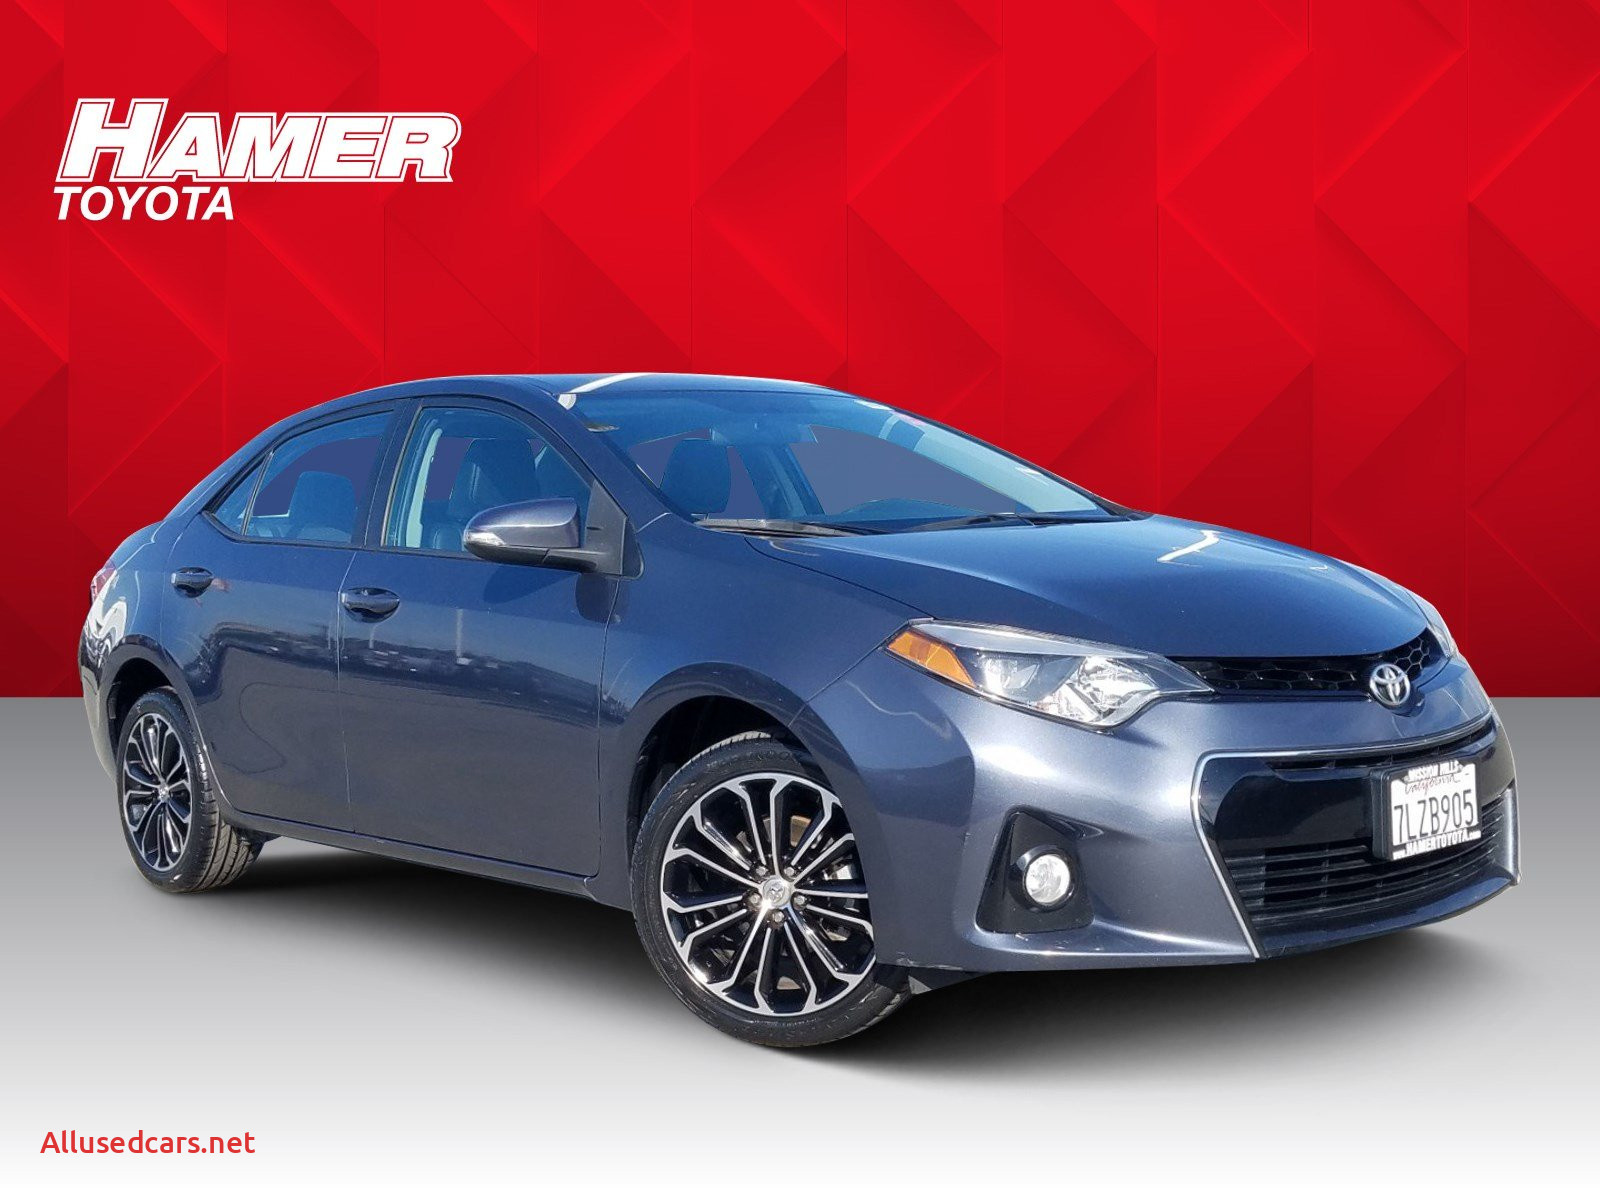 Buy New toyota Corolla 2015 Inspirational Pre Owned 2015 toyota Corolla S Plus Fwd 4dr Car